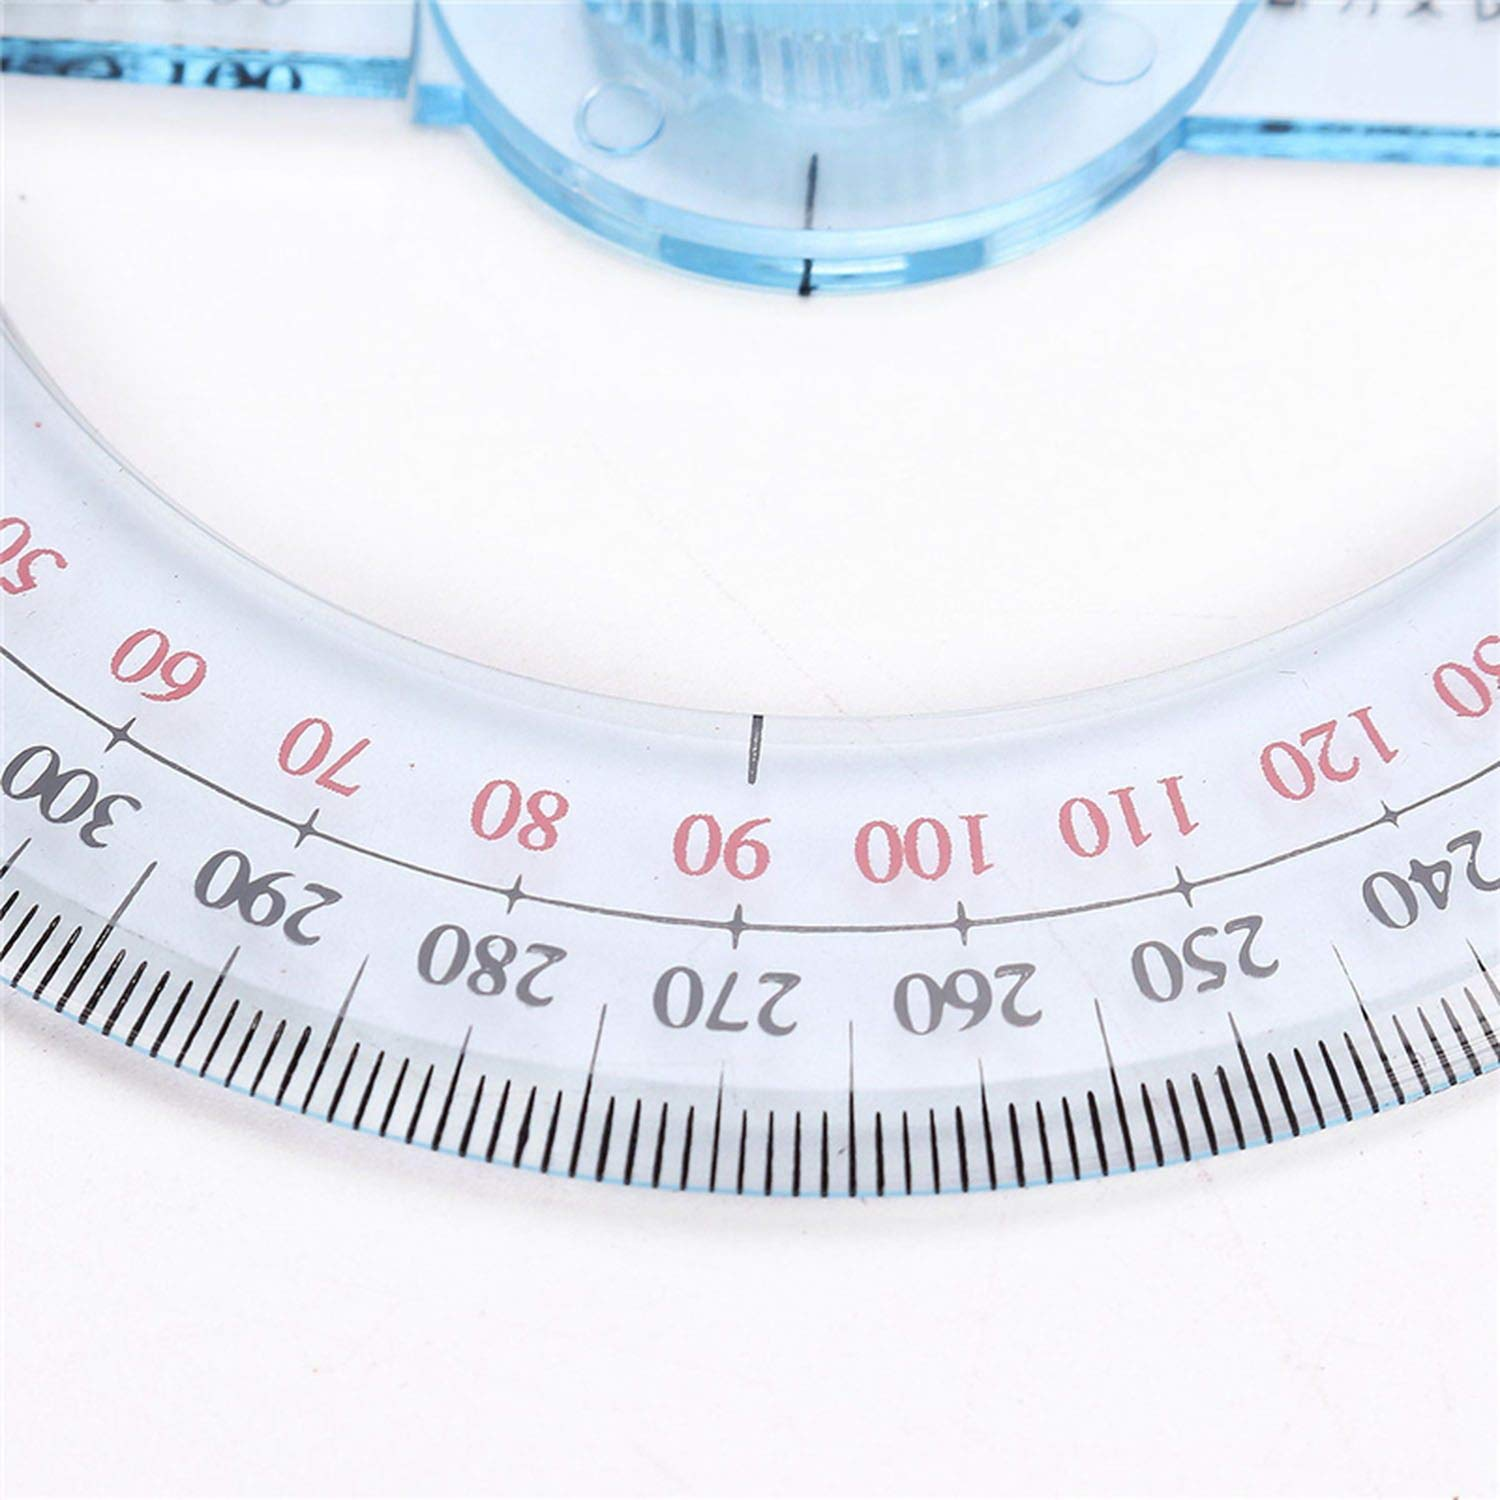 Portable Diameter of 10cm Plastic 360 Degree Pointer Protractor Ruler Angle Swing Arm for School Office Supplies,1 Pc by lucky-eye (Image #6)